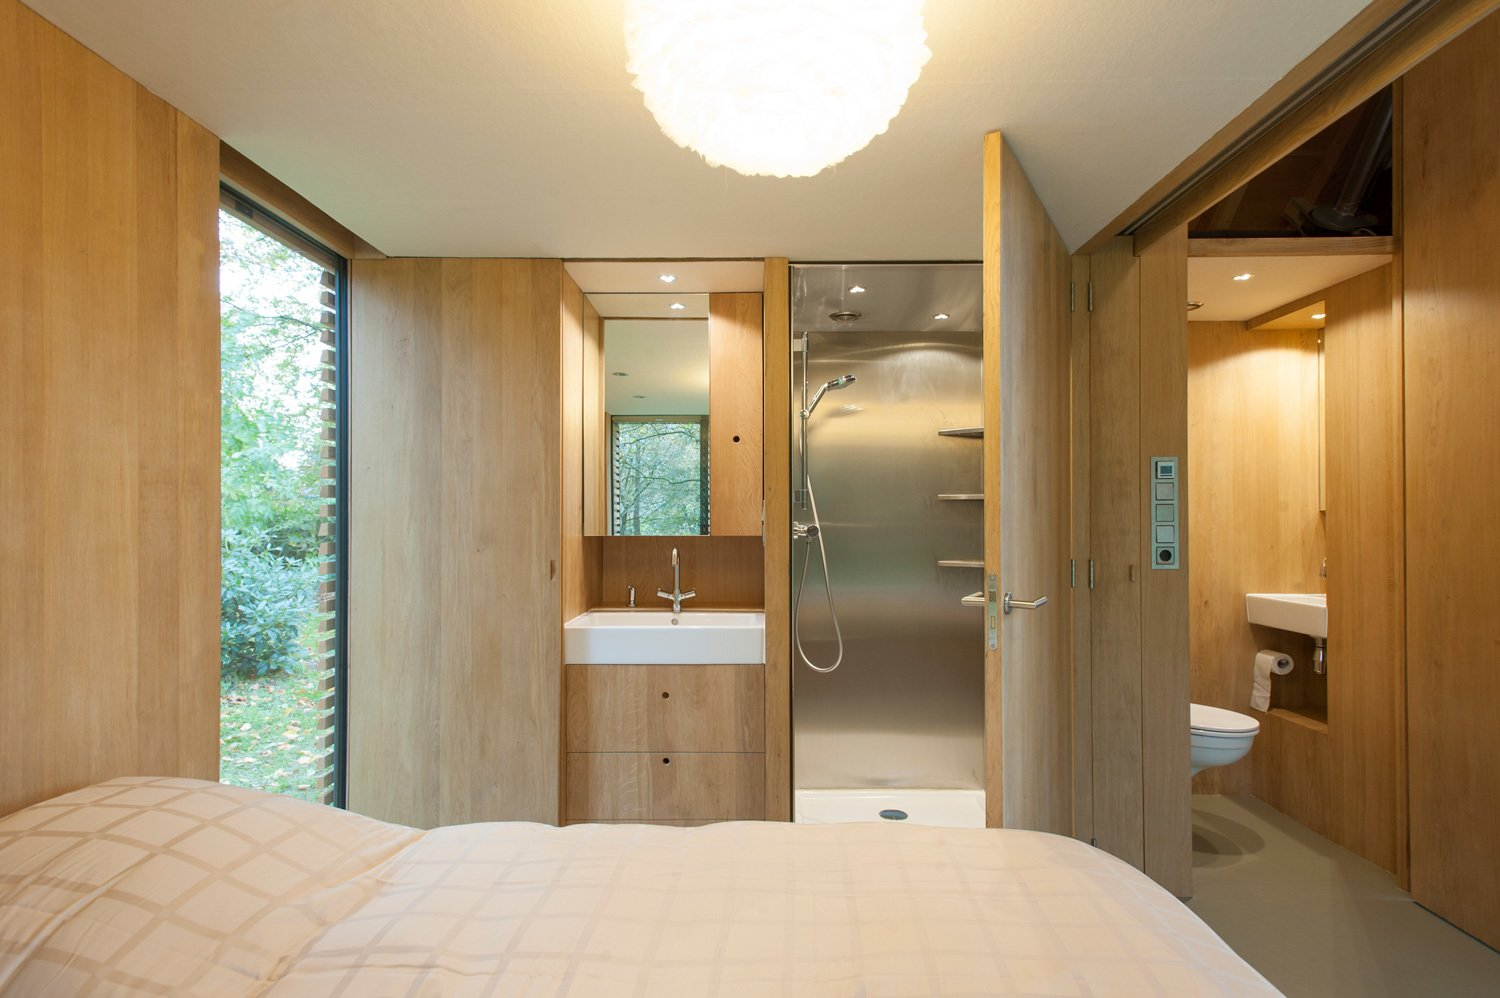 In the bedroom, a door opens directly to the stainless steel shower. A half-bath sits just outside the bedroom, allowing guests easy access to it when the wood panel dividing the bedroom from the main area is drawn. The sinks are by Duravit and faucets by Grohe. Tagged: Bath Room and Enclosed Shower.  Photo 6 of 9 in This Light-Filled Cabin in the Netherlands Is Completely Made by Hand from Utrecht Cabin